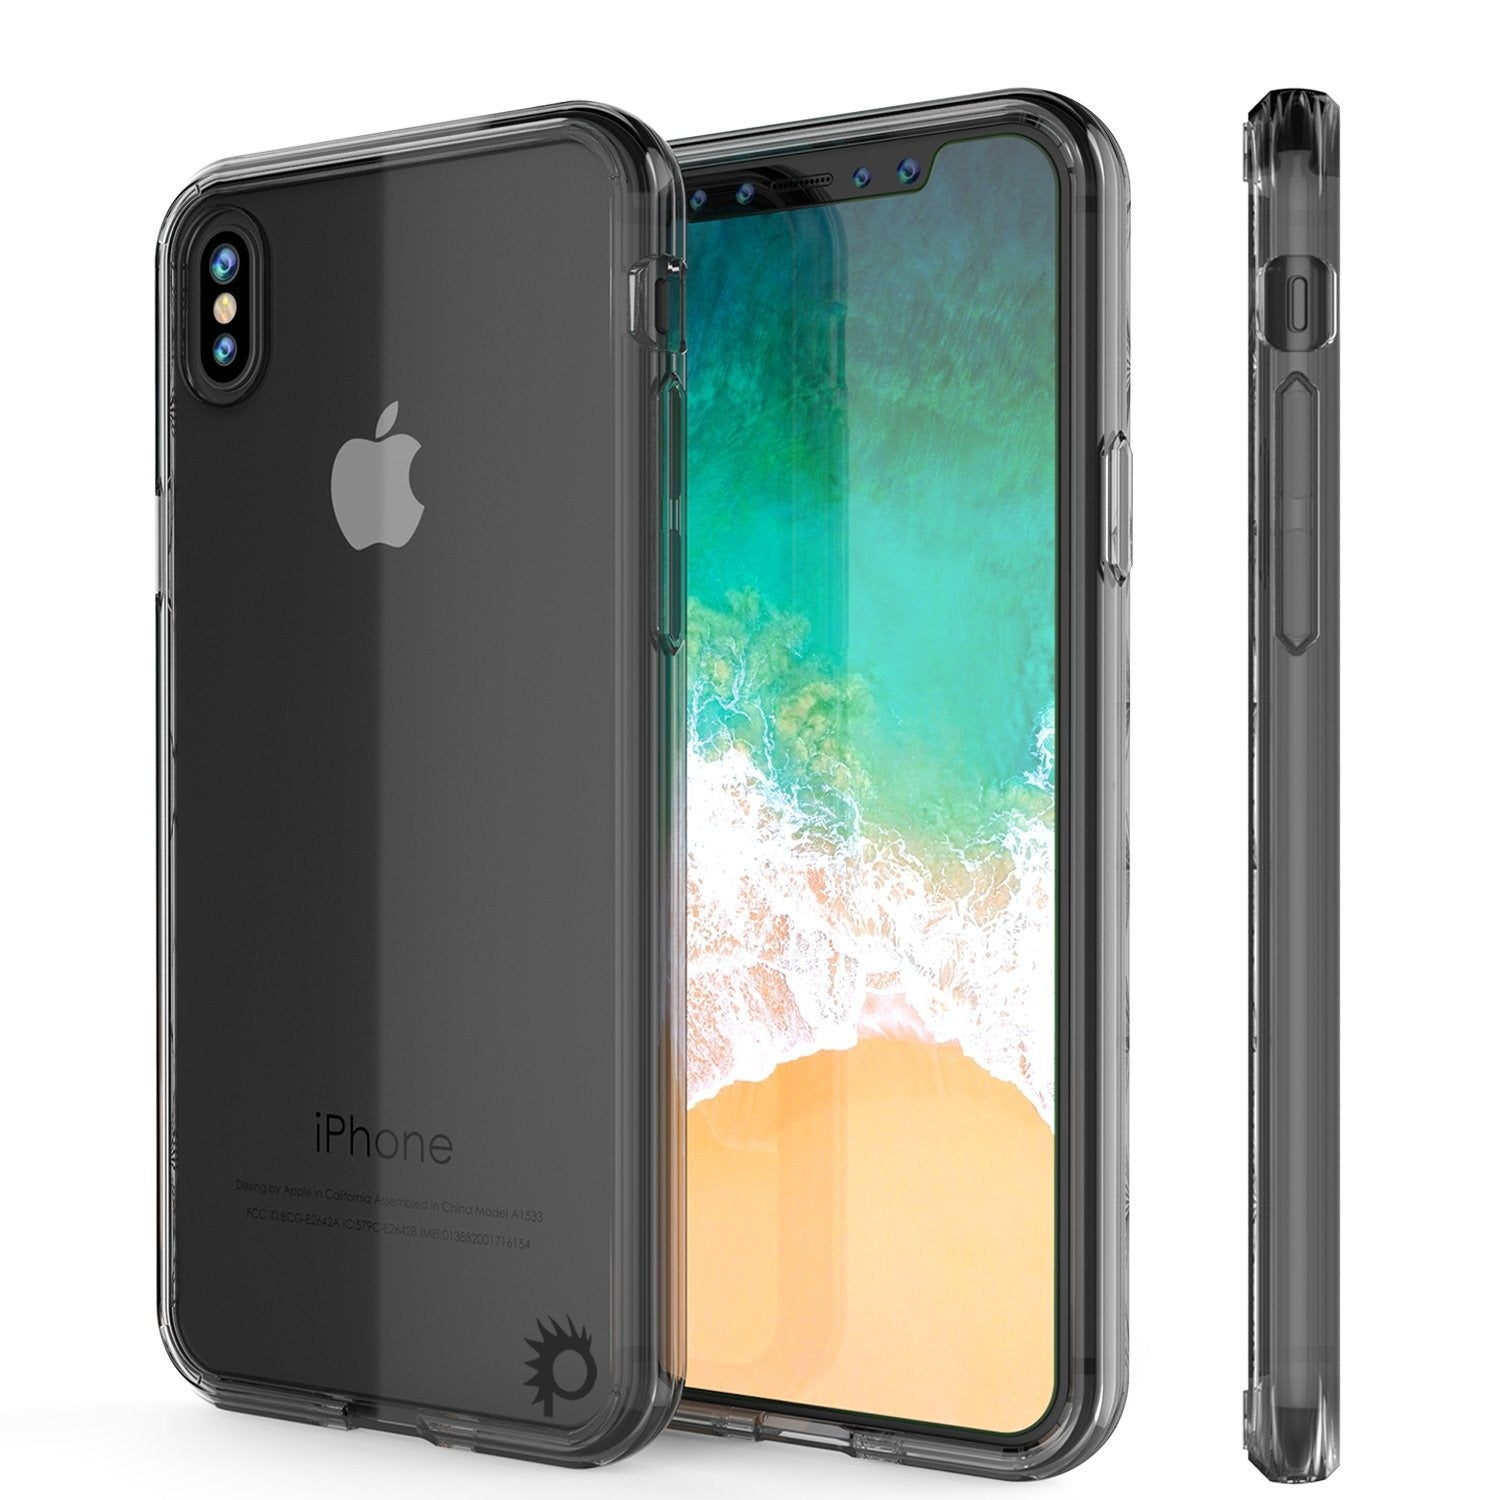 iPhone X Case, PUNKcase [LUCID 2.0 Series] [Slim Fit] Armor Cover W/Integrated Anti-Shock System [Crystal Black]